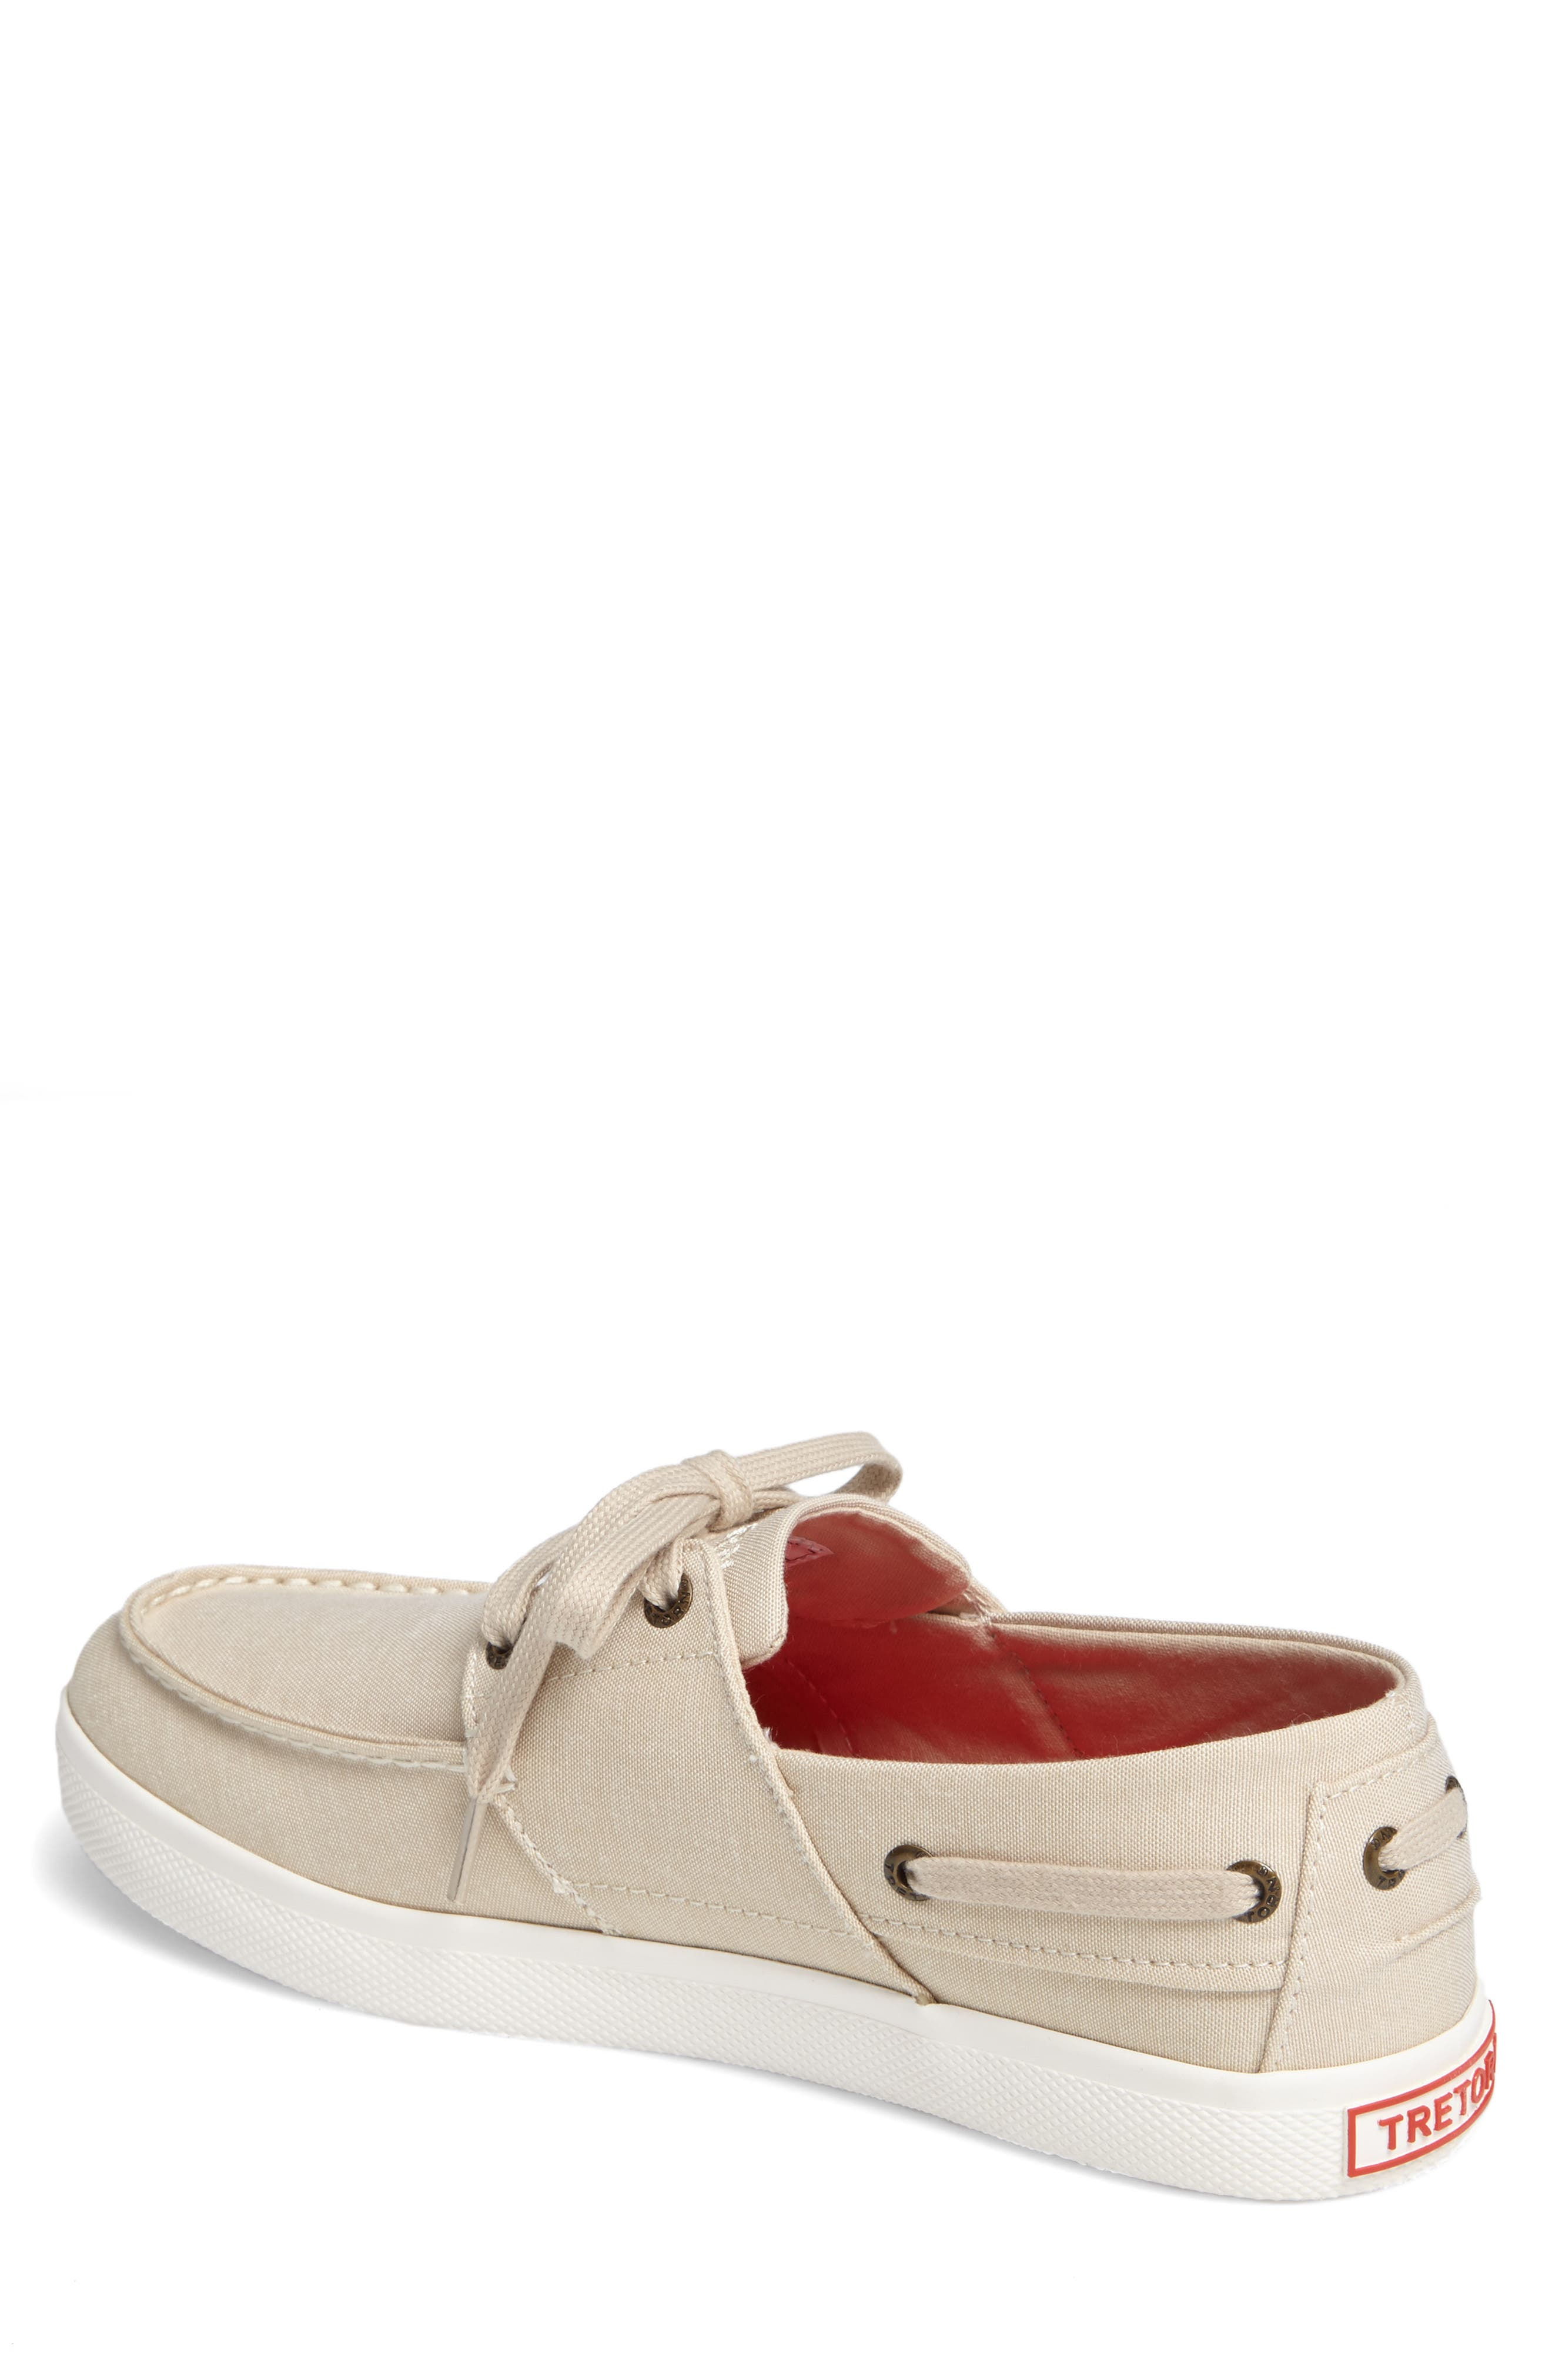 Motto Boat Shoe,                             Alternate thumbnail 2, color,                             OYSTER CANVAS